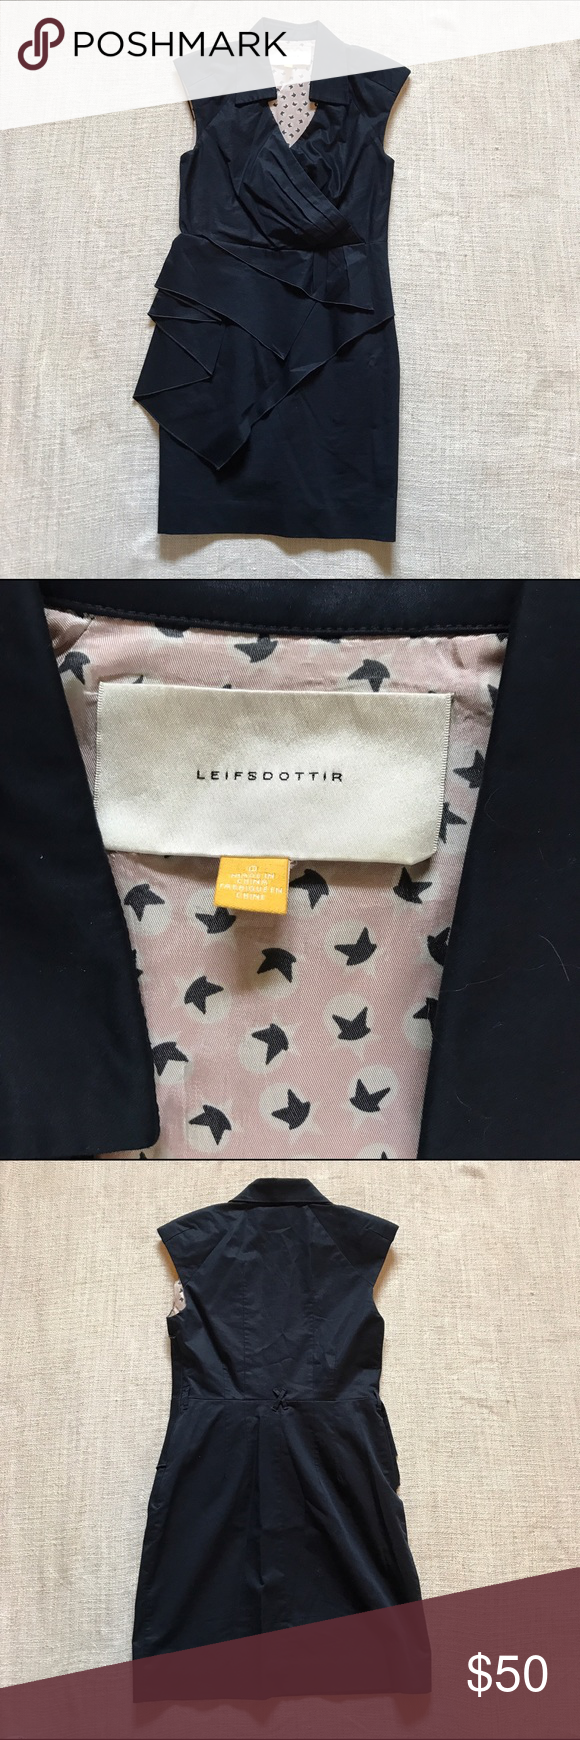 ANTHROPOLOGIE LEIFSDOTTIR Navy Collared Tier Dress LEIFSDOTTIR Navy Sateen 'Eden' Dress DETAILS: Leifsdottir Lightweight Cotton Sateen Spread Collar With V-Neck, Asymmetric Draped Peplum Detail On Front, Side Zip Closure, Fully Lined, Belt Loops SHELL: 97% Cotton; 3% Lycra; LINER 100% Acetate See photos for visual description and measurements. Size 0 All of my items are Pre-Owned. While they may not have been worn, they have been purchased, hung in a closet and been in someone else's…